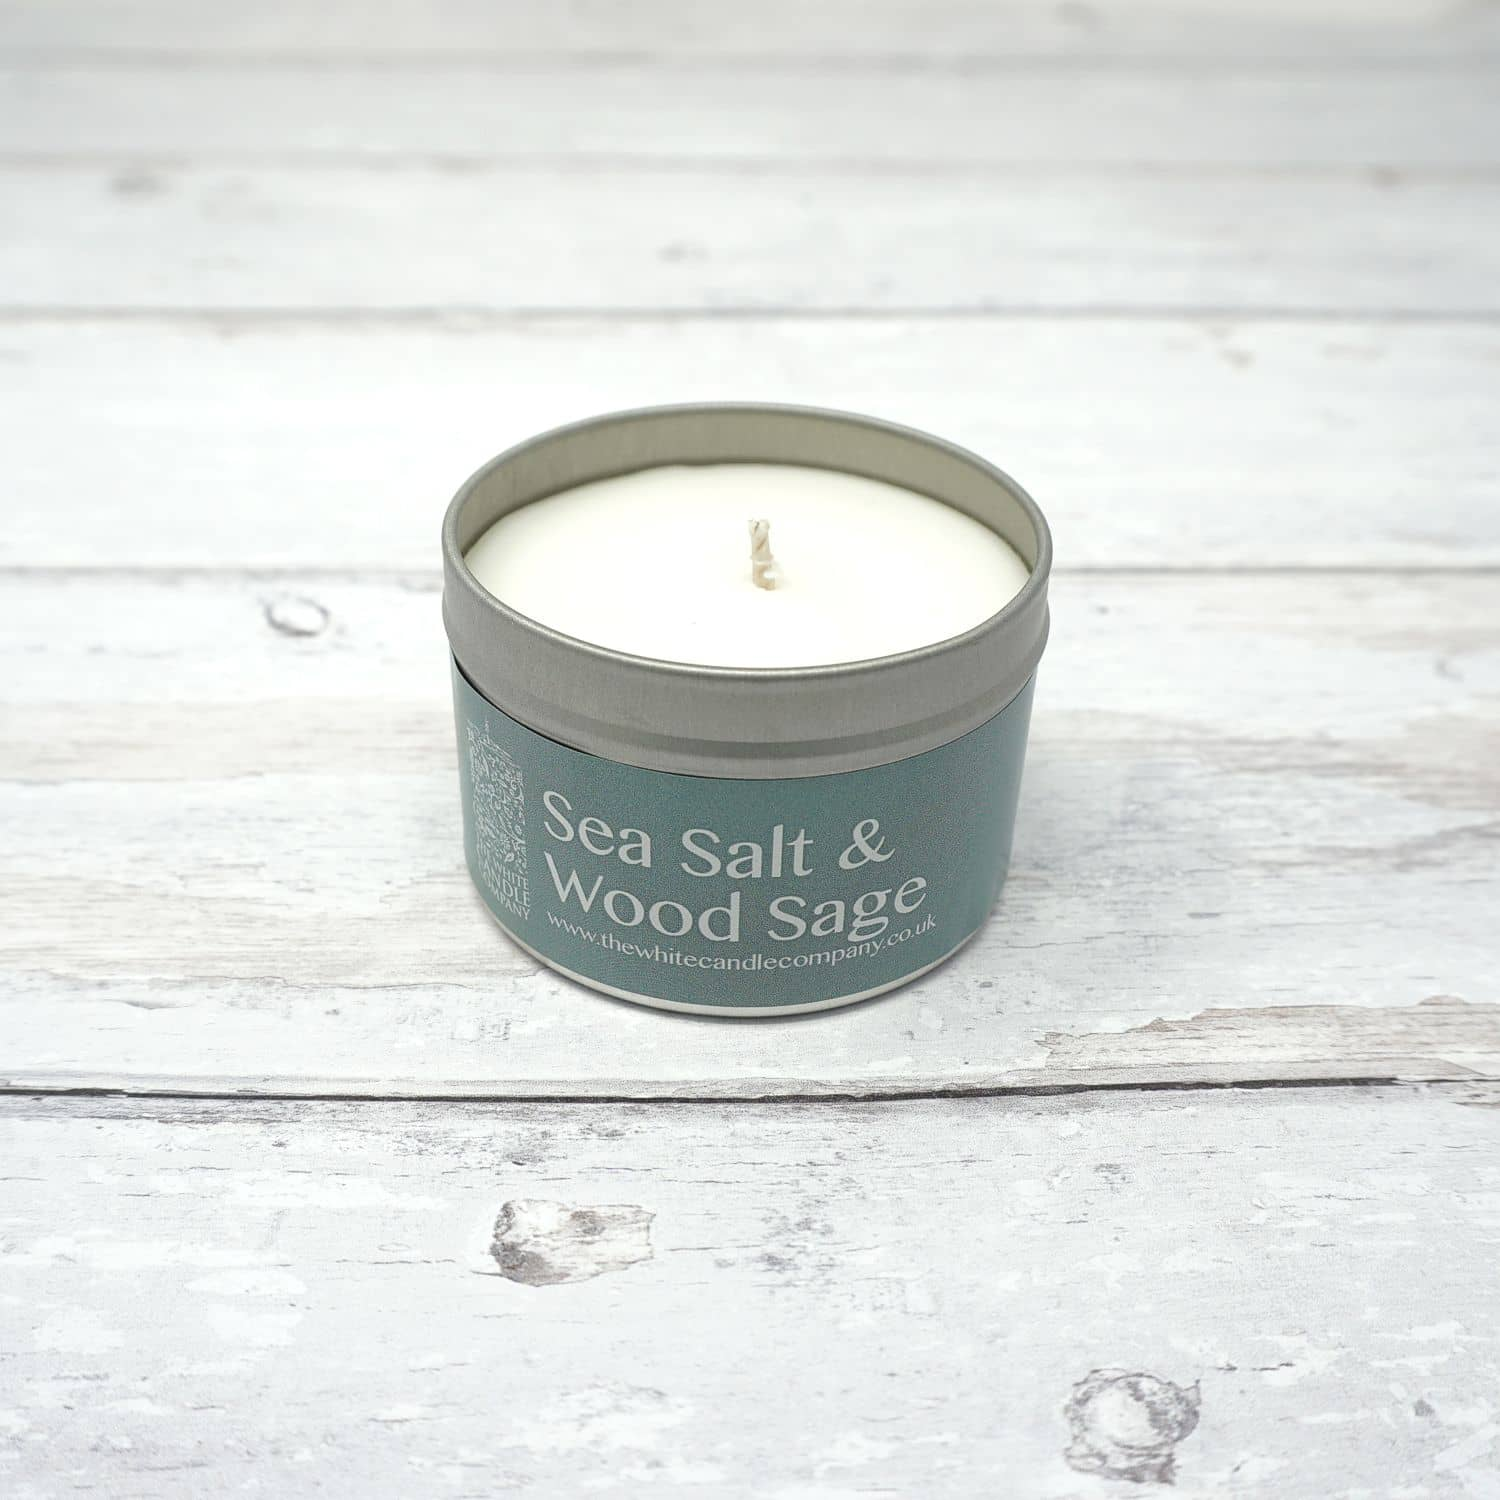 White Candle Company 100g Tin - Sea Salt & Wood Sage | Yarn Worx